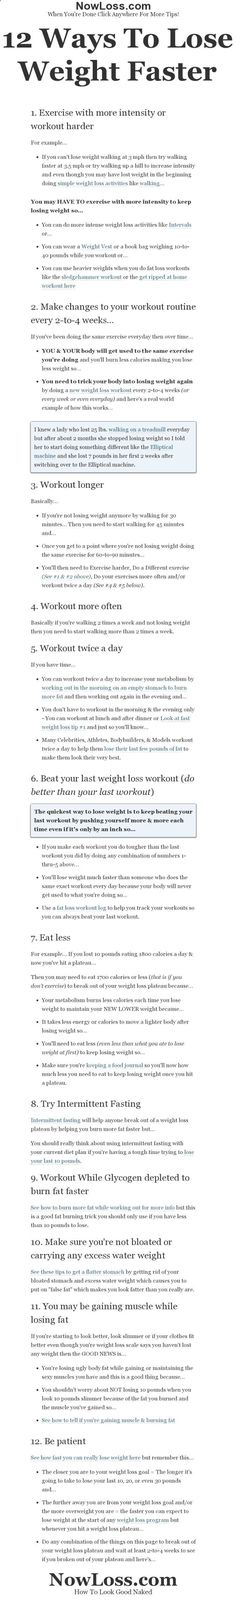 www.weightlossgai... offers the best training and diet plan for fat loss and gain muscle. The turbulence training program is a program specifically developed to help busy women and men such as parents, executives and students to lose weight and keep fit i #Plantokeepfit